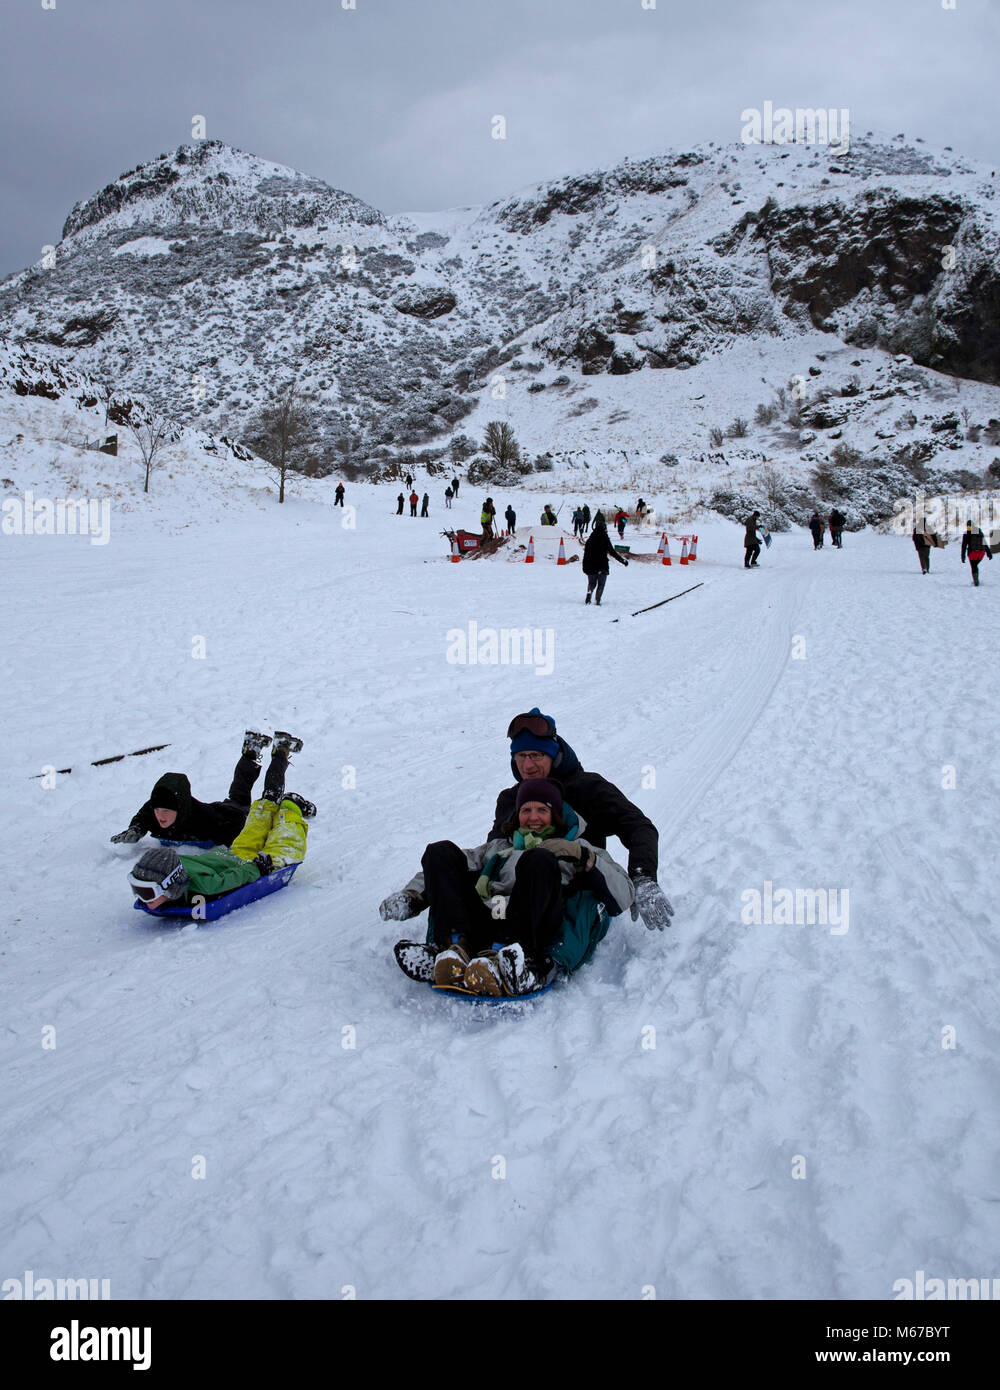 Edinburgh, Holyrood Park, Scotland, 1st March 2018, UK weather young and old enjoying sledging and skiing on the - Stock Image